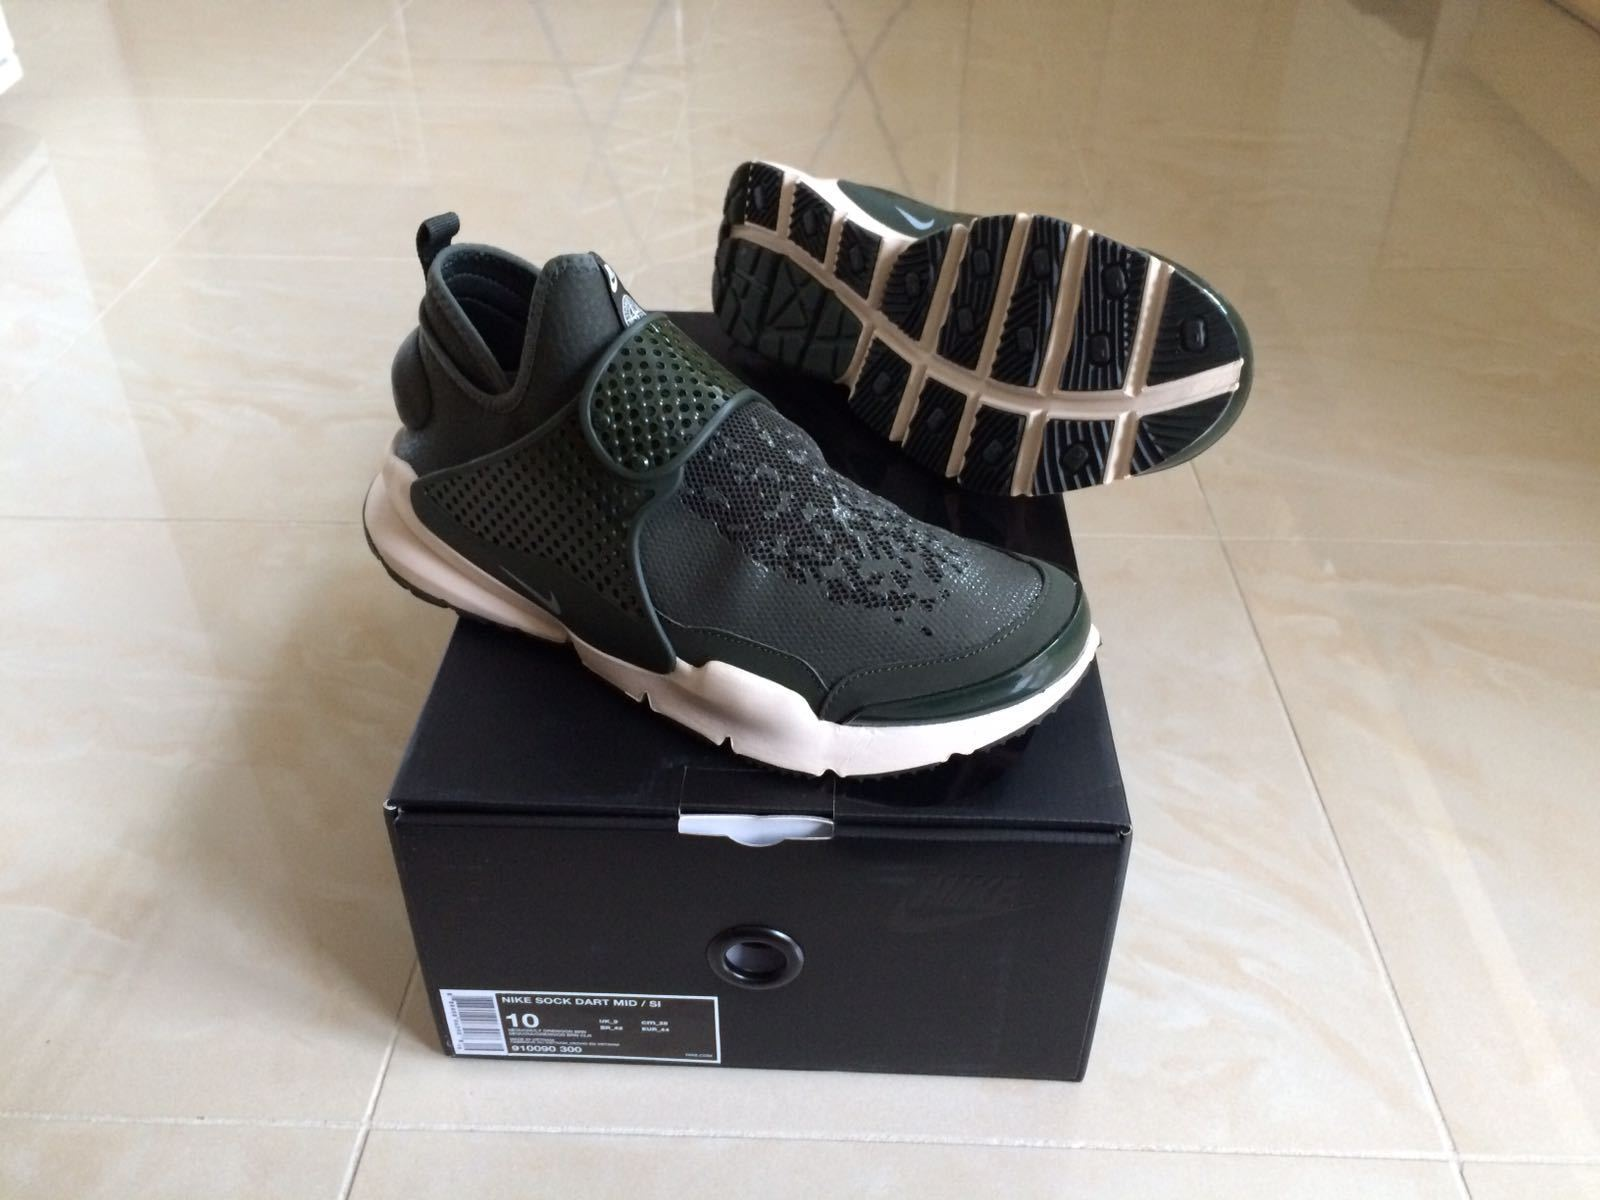 NIKE LAB STONE ISLAND X SOCK DART MID Grün OLIVE ALL GrößeS UK 7 8 9 10 11 NEW